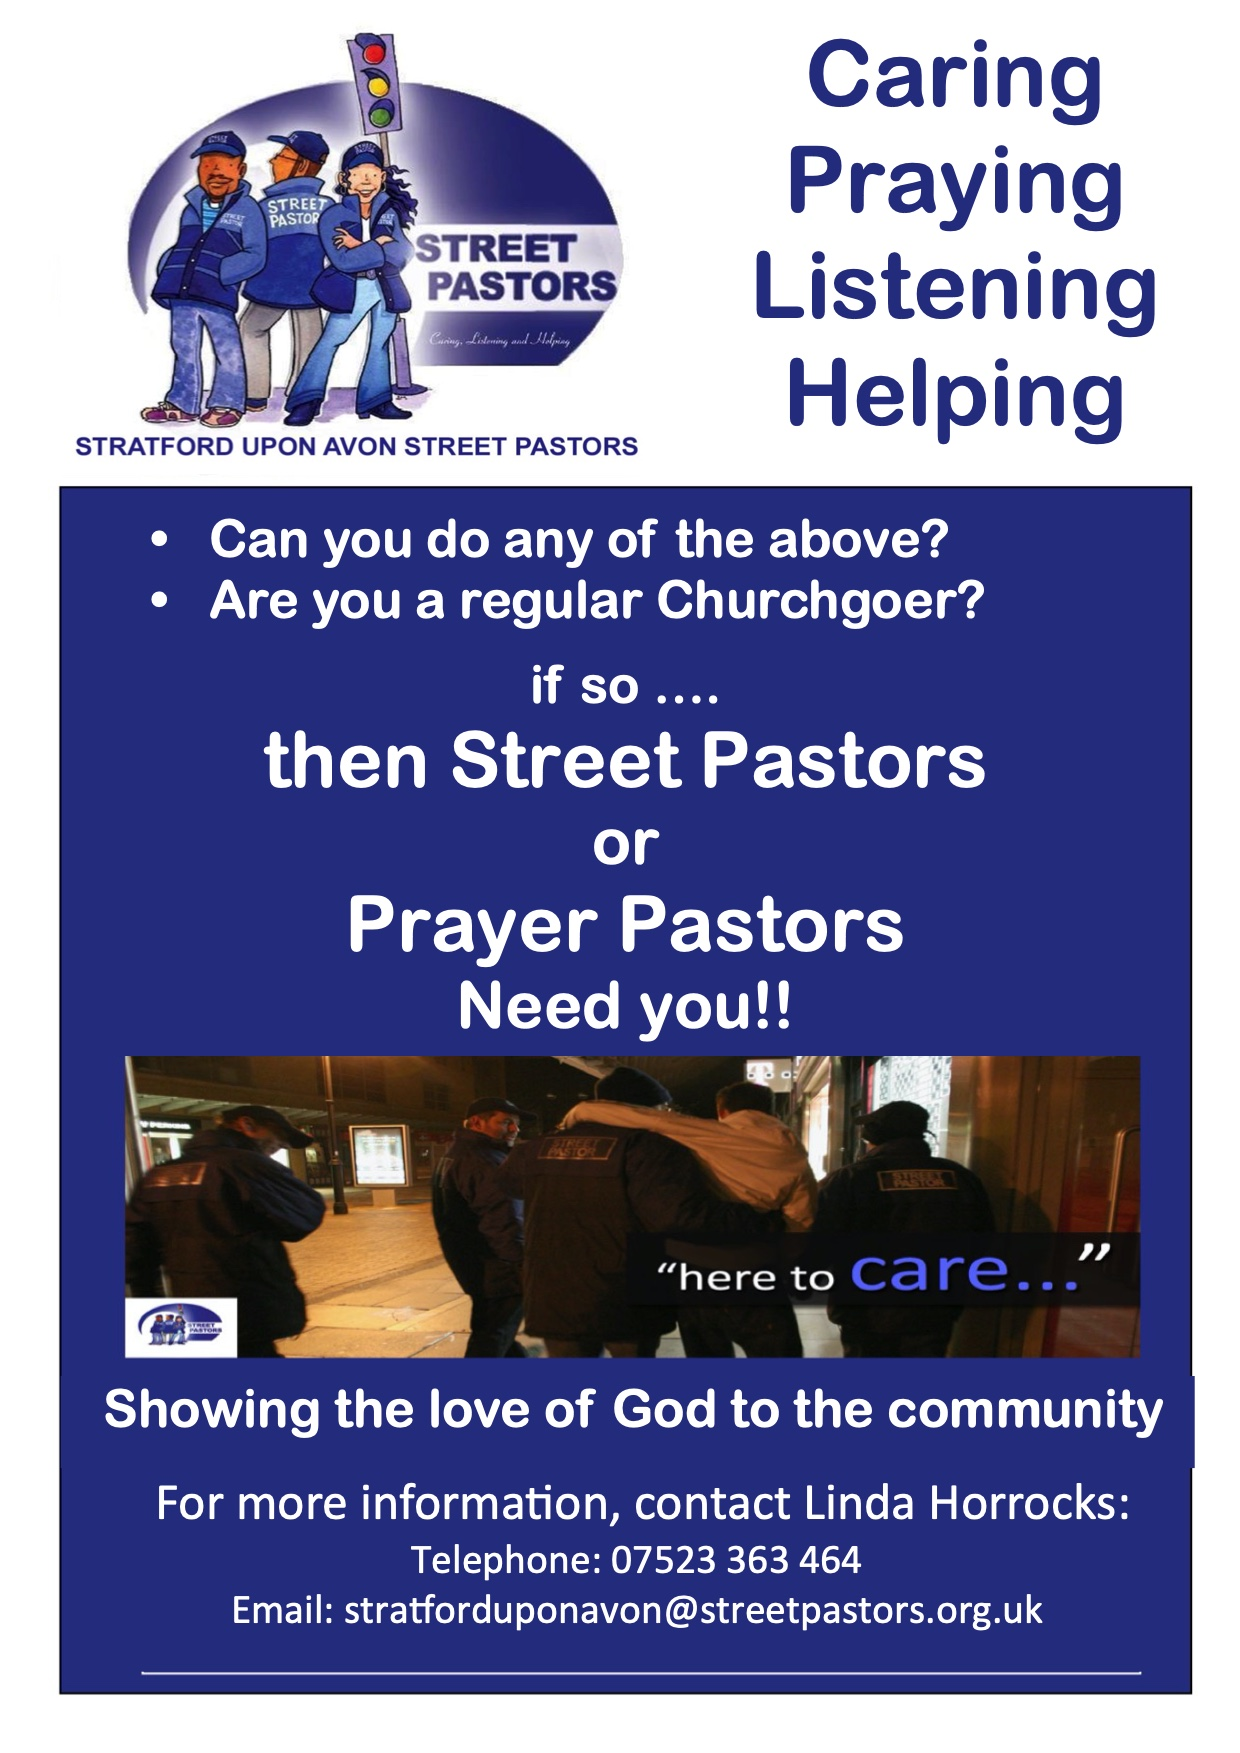 Can you care, pray, listen or help? Are you a regular church goer? If so then Street Pastors or Prayer Pastors need you!